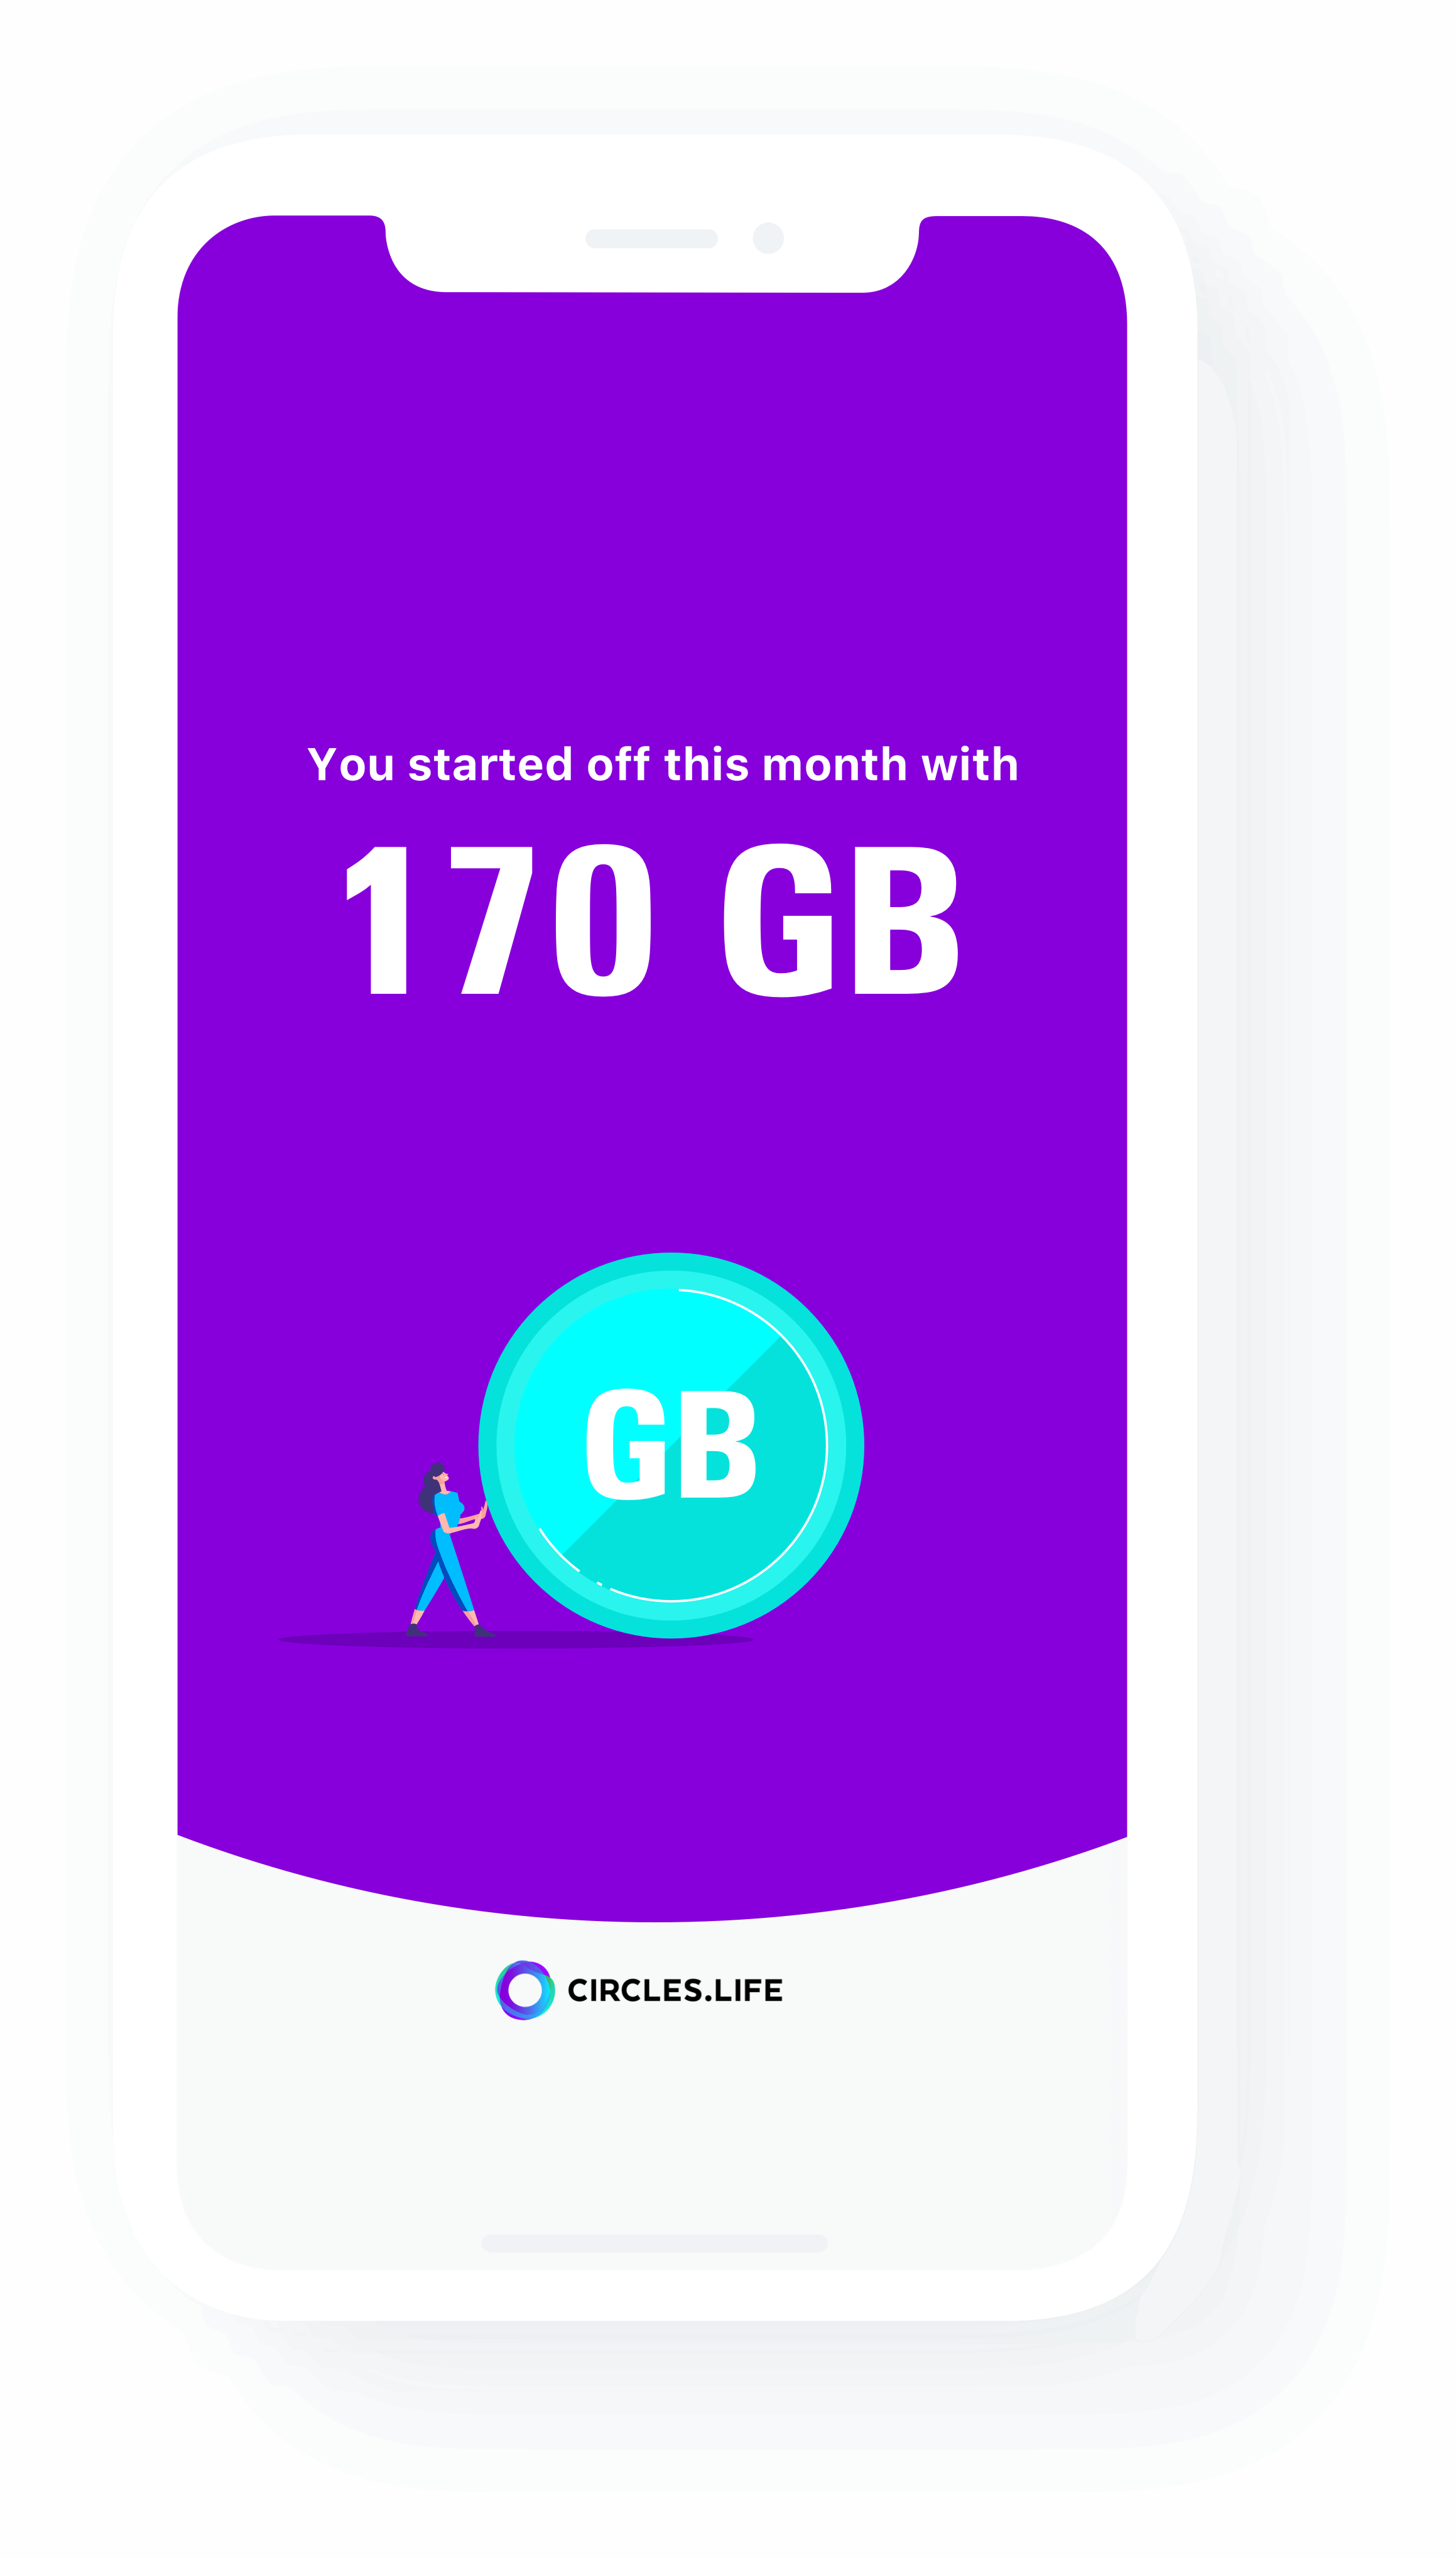 SECOND MONTH: Only used 30GB? Additional 70GB is rolled over to the next month. Now you have 170GB.